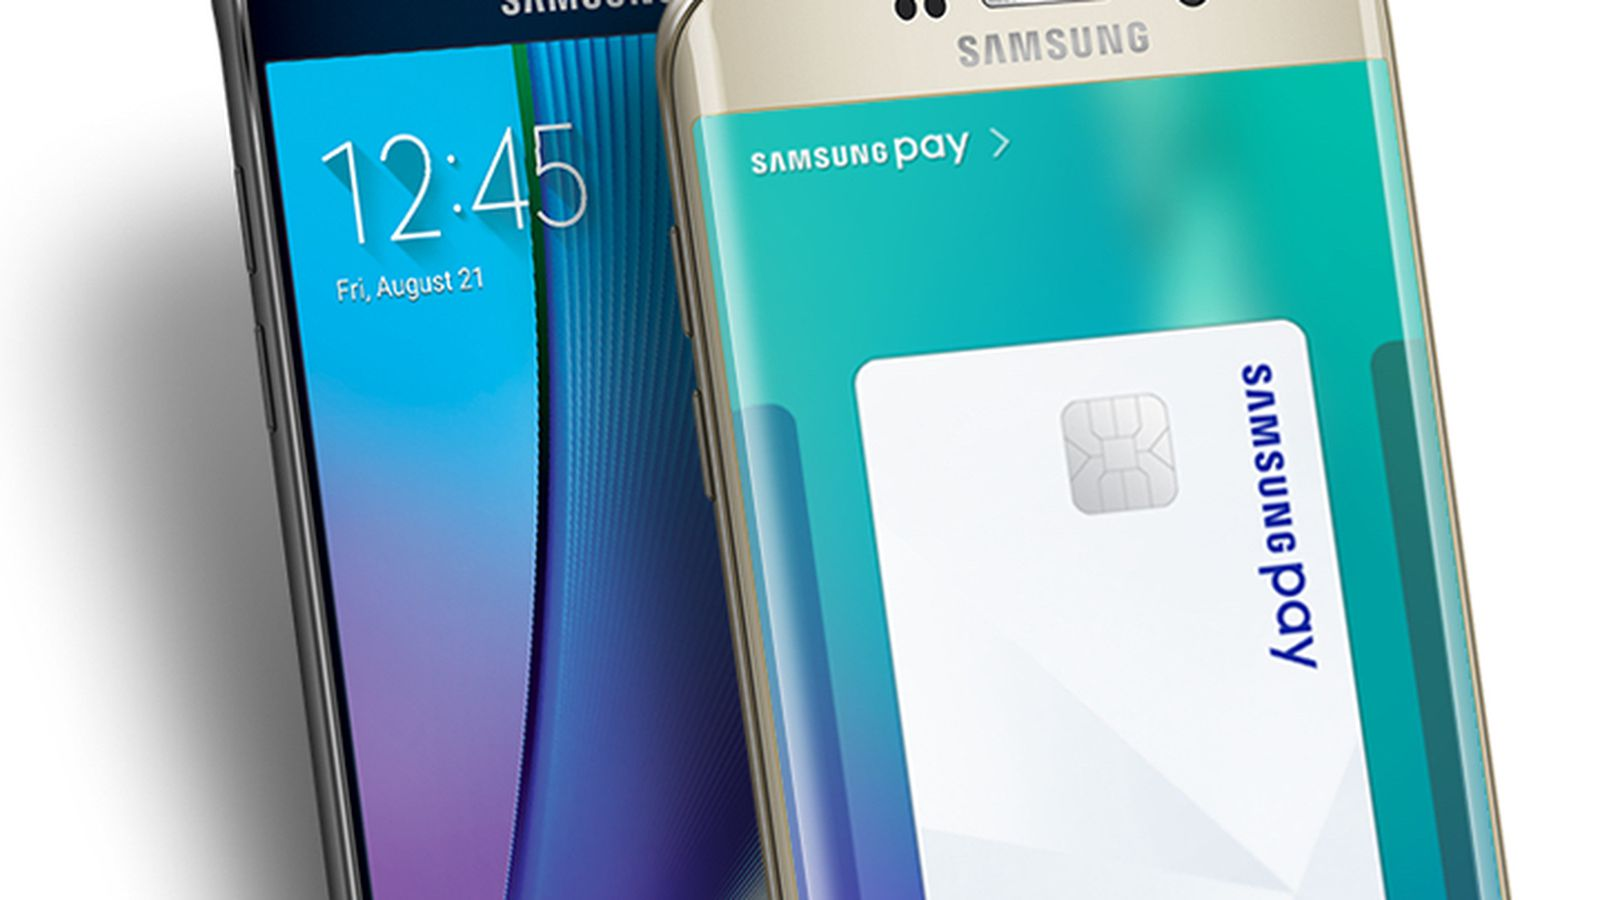 photo image You can now use PayPal to fund Samsung Pay purchases